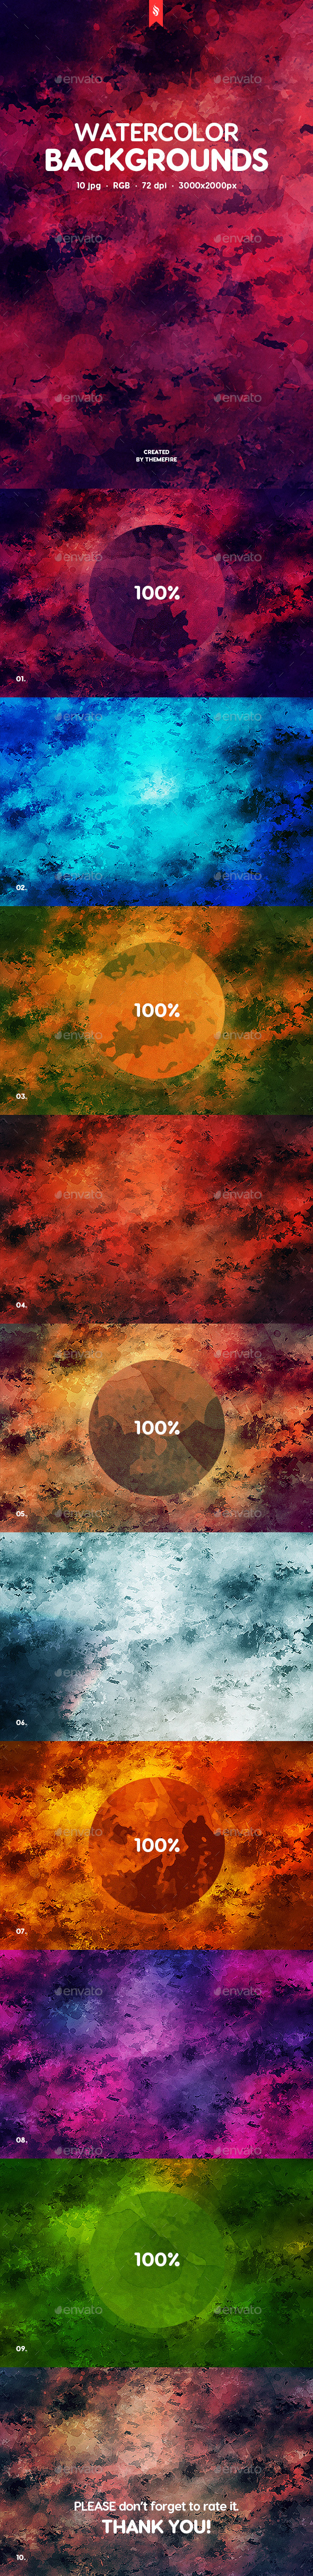 Watercolor Backgrounds - Patterns Backgrounds